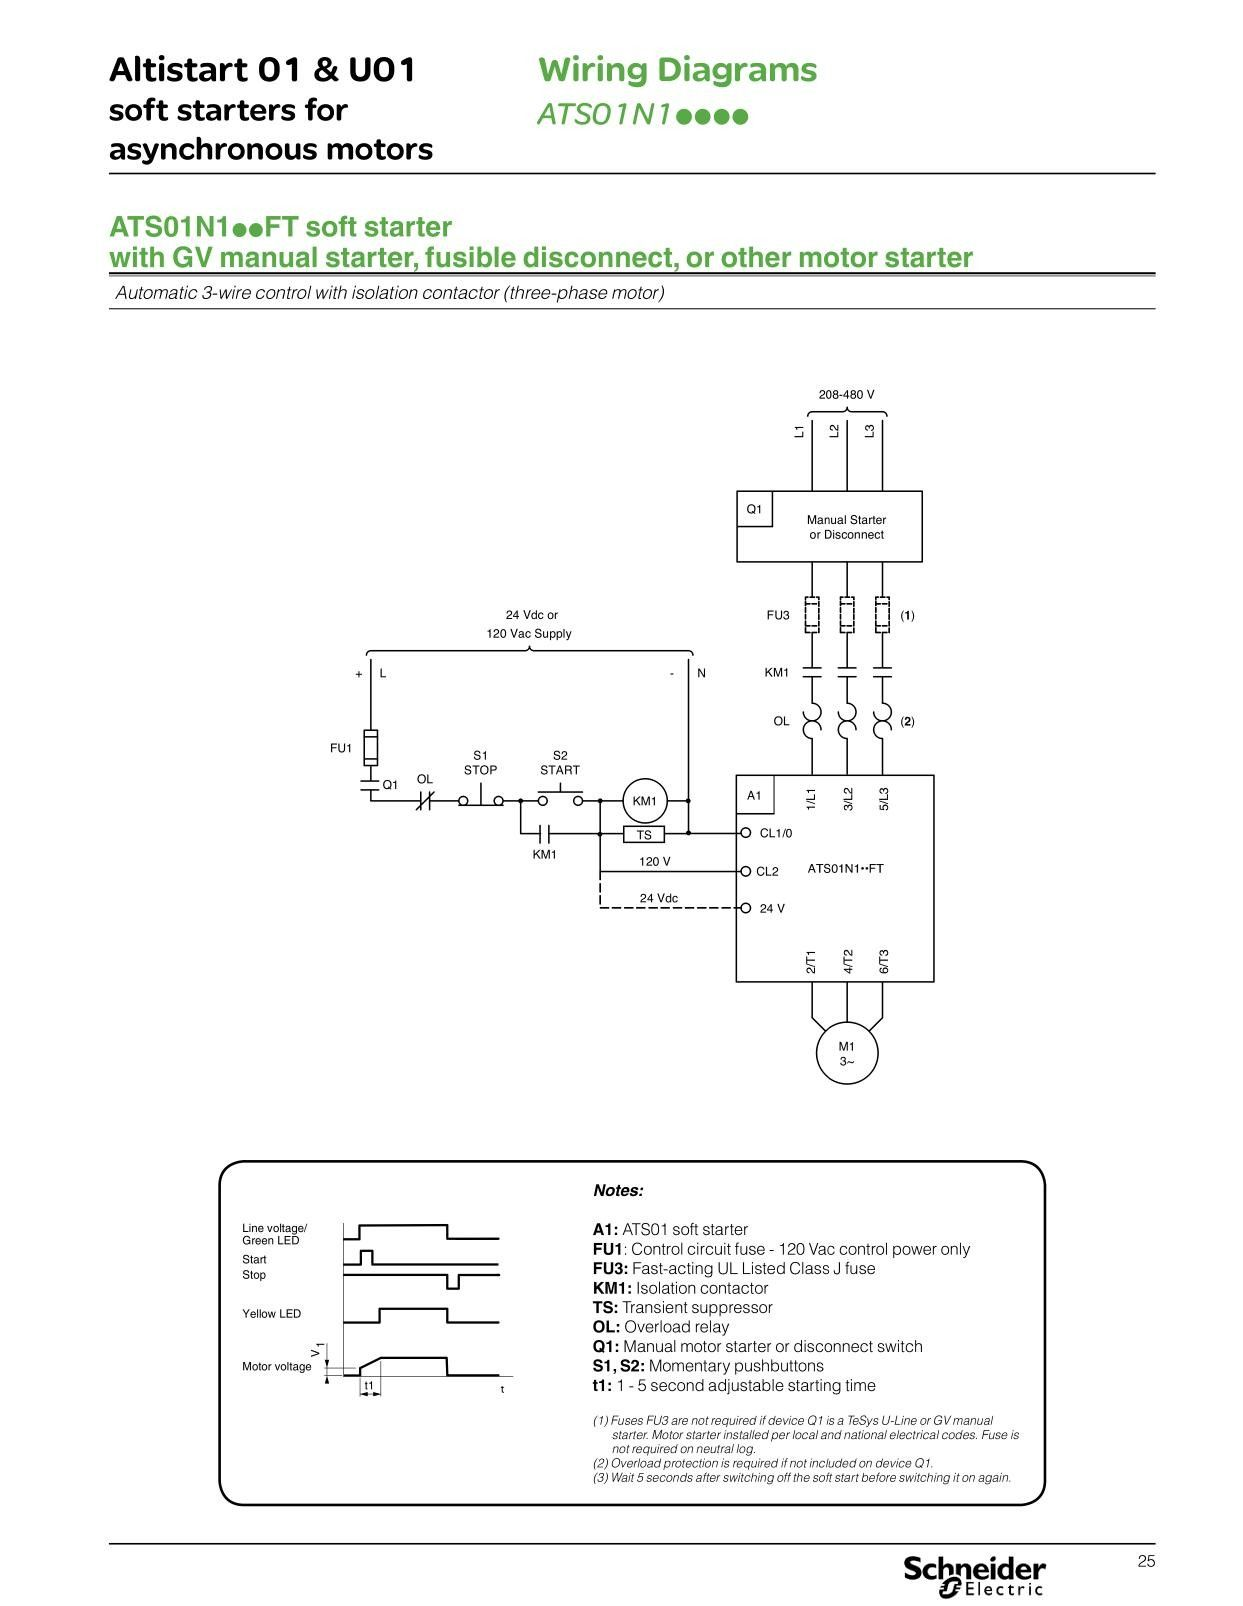 New Wiring Diagram Of A Direct Online Starter With Protective